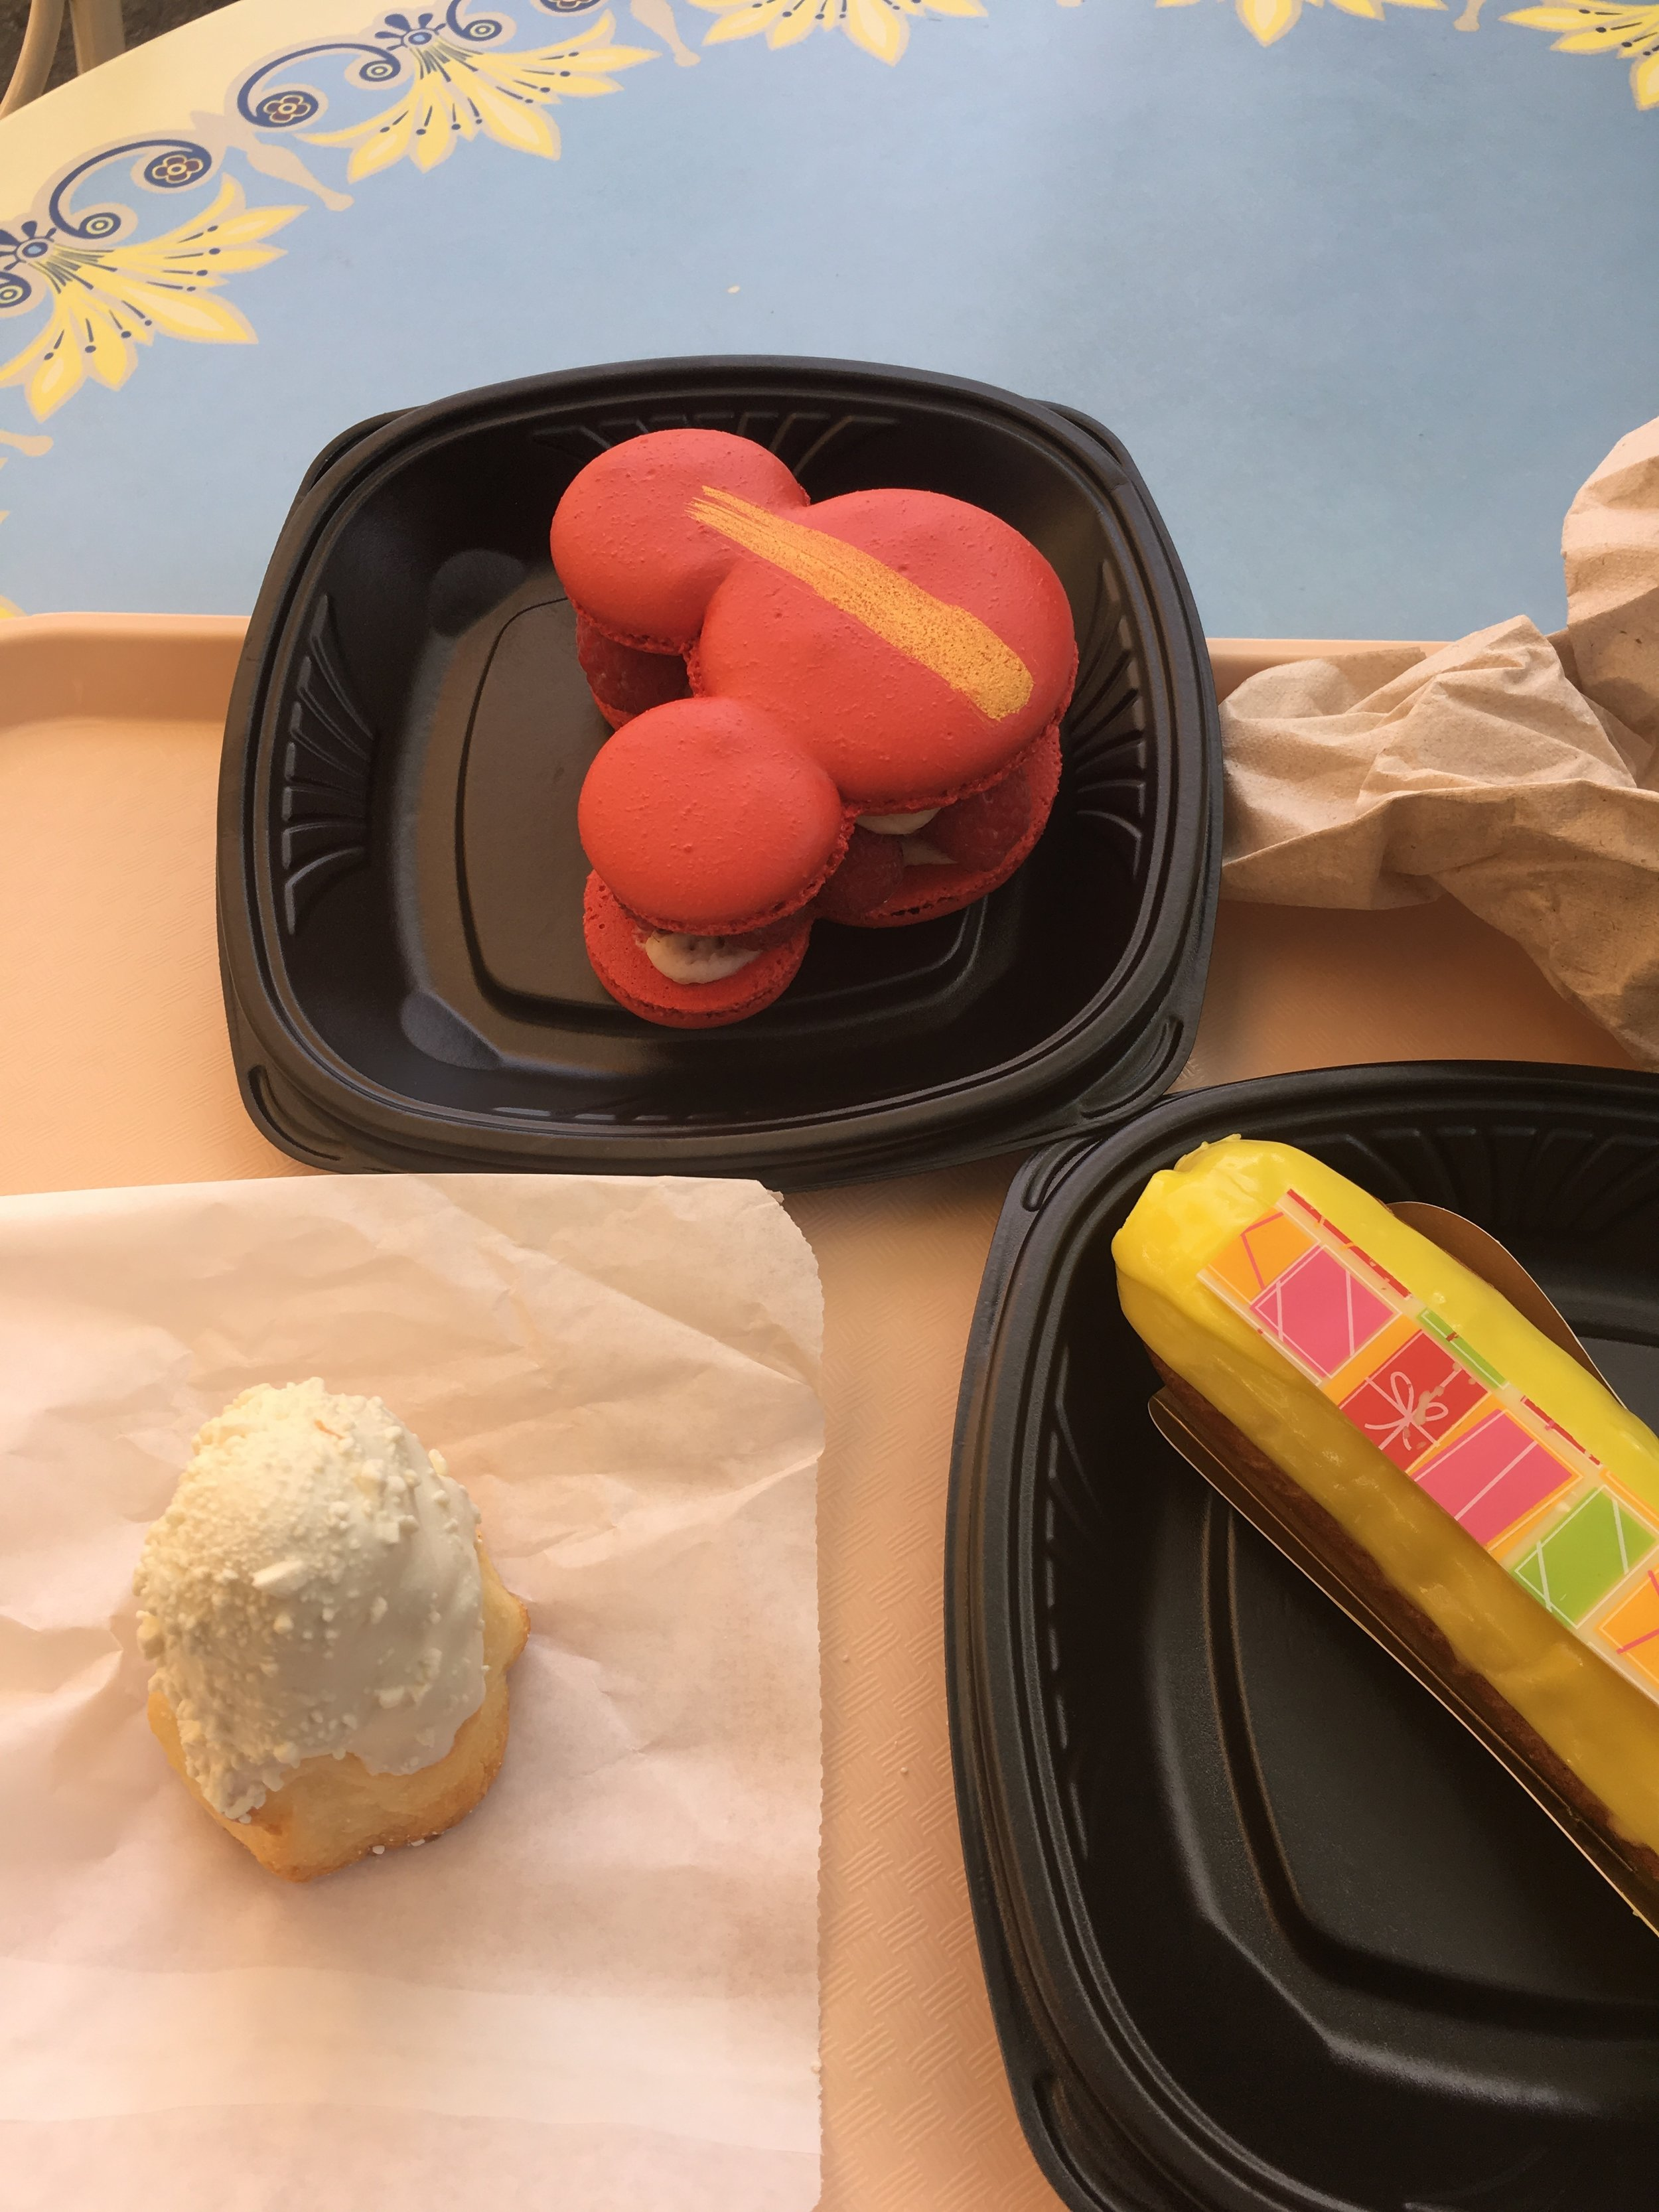 Jeez.  I really need to take a second to at least lay out things so they are not all caddywompus. Clockwise from bottom left- Matterhorn Macaroon, Raspberry Mickey Macaron, Lime(?) Eclair.  Somehow I lucked out and had the eclair pointing into the shot.